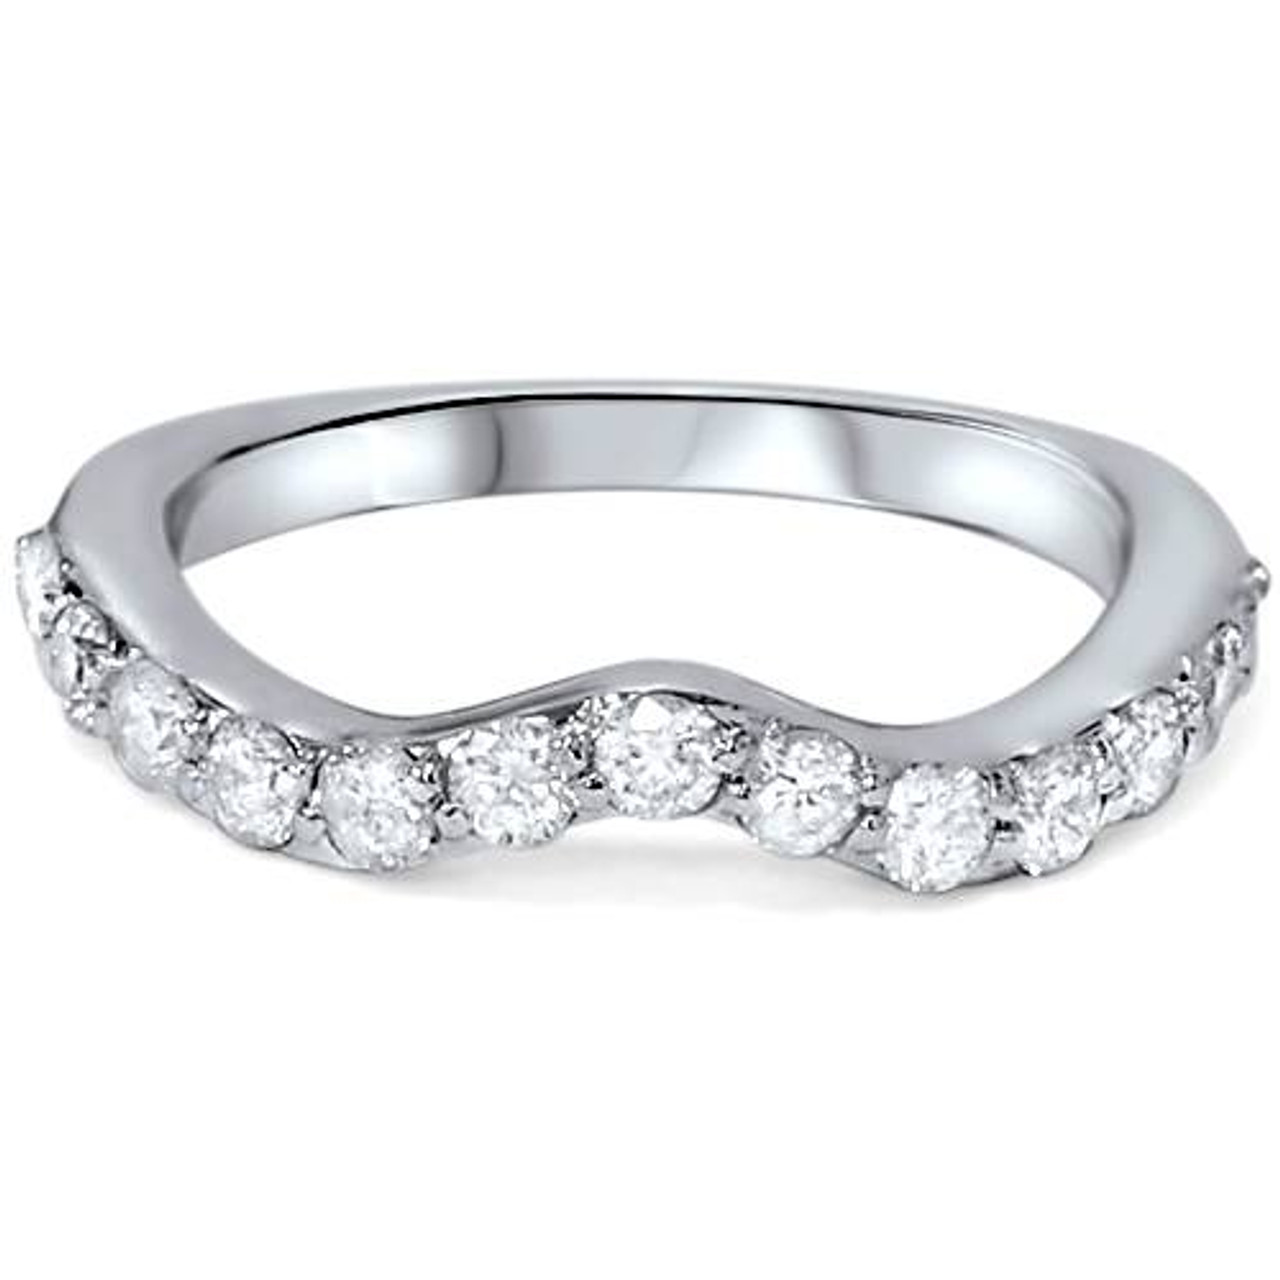 Sd3d71ba2asa5ozcloudfront53000589imagescurved: Curved Wedding Band 0 5ct Diamonds At Reisefeber.org